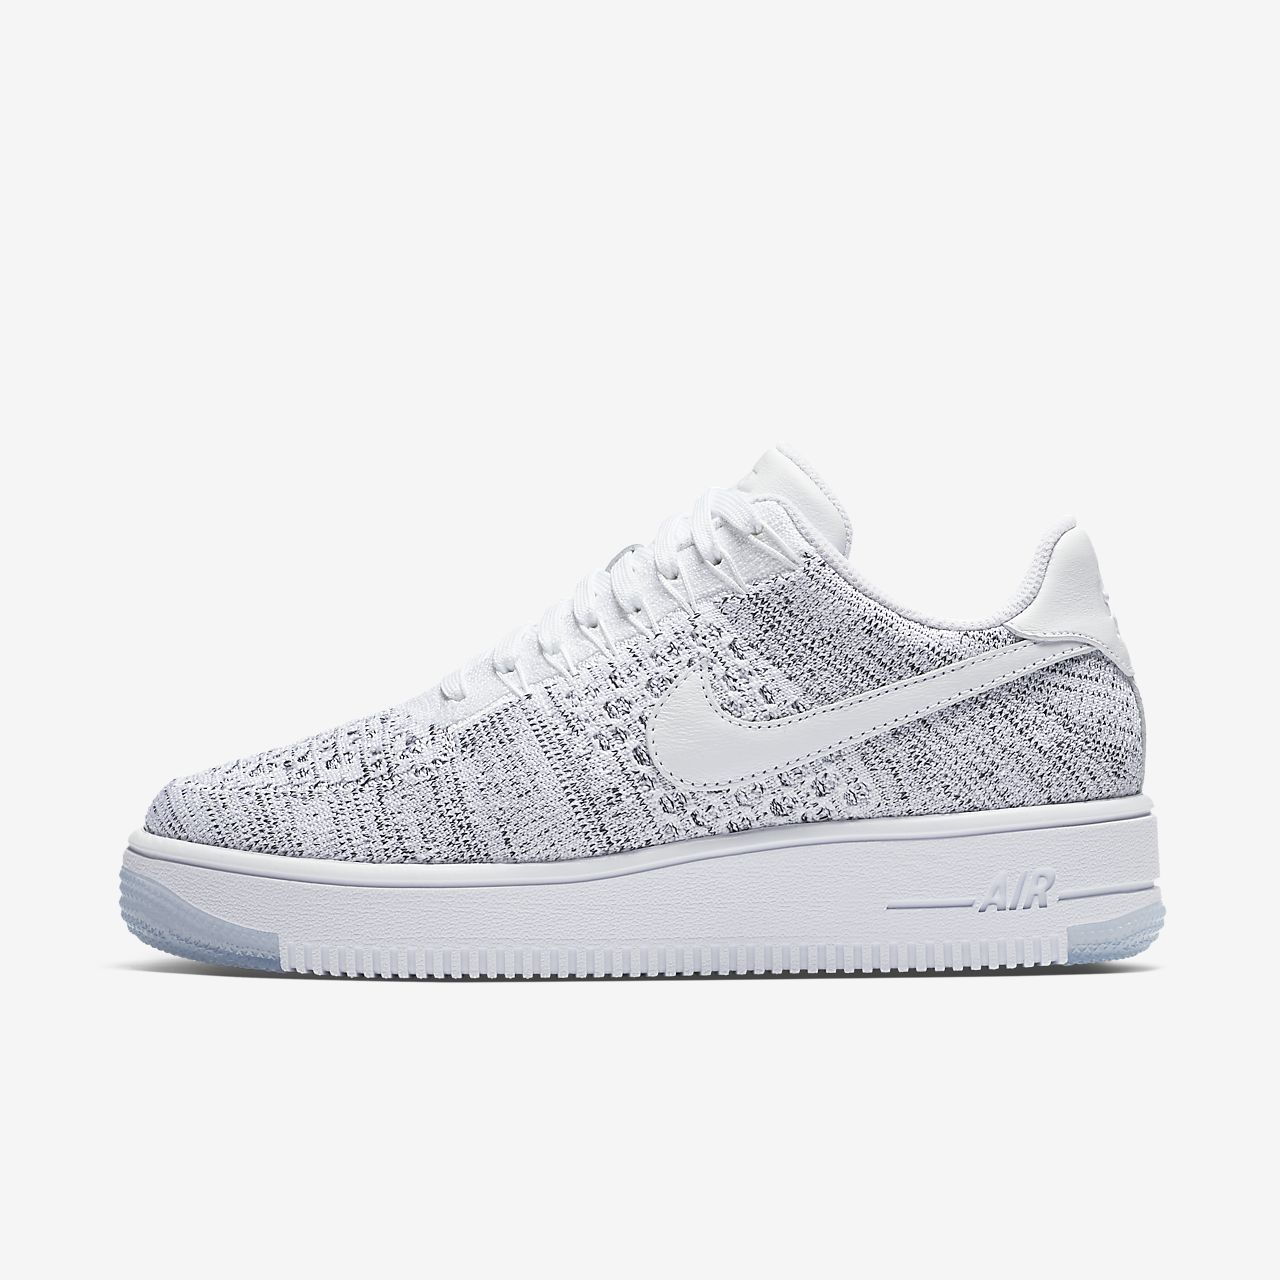 air force 1 black white swoosh nz